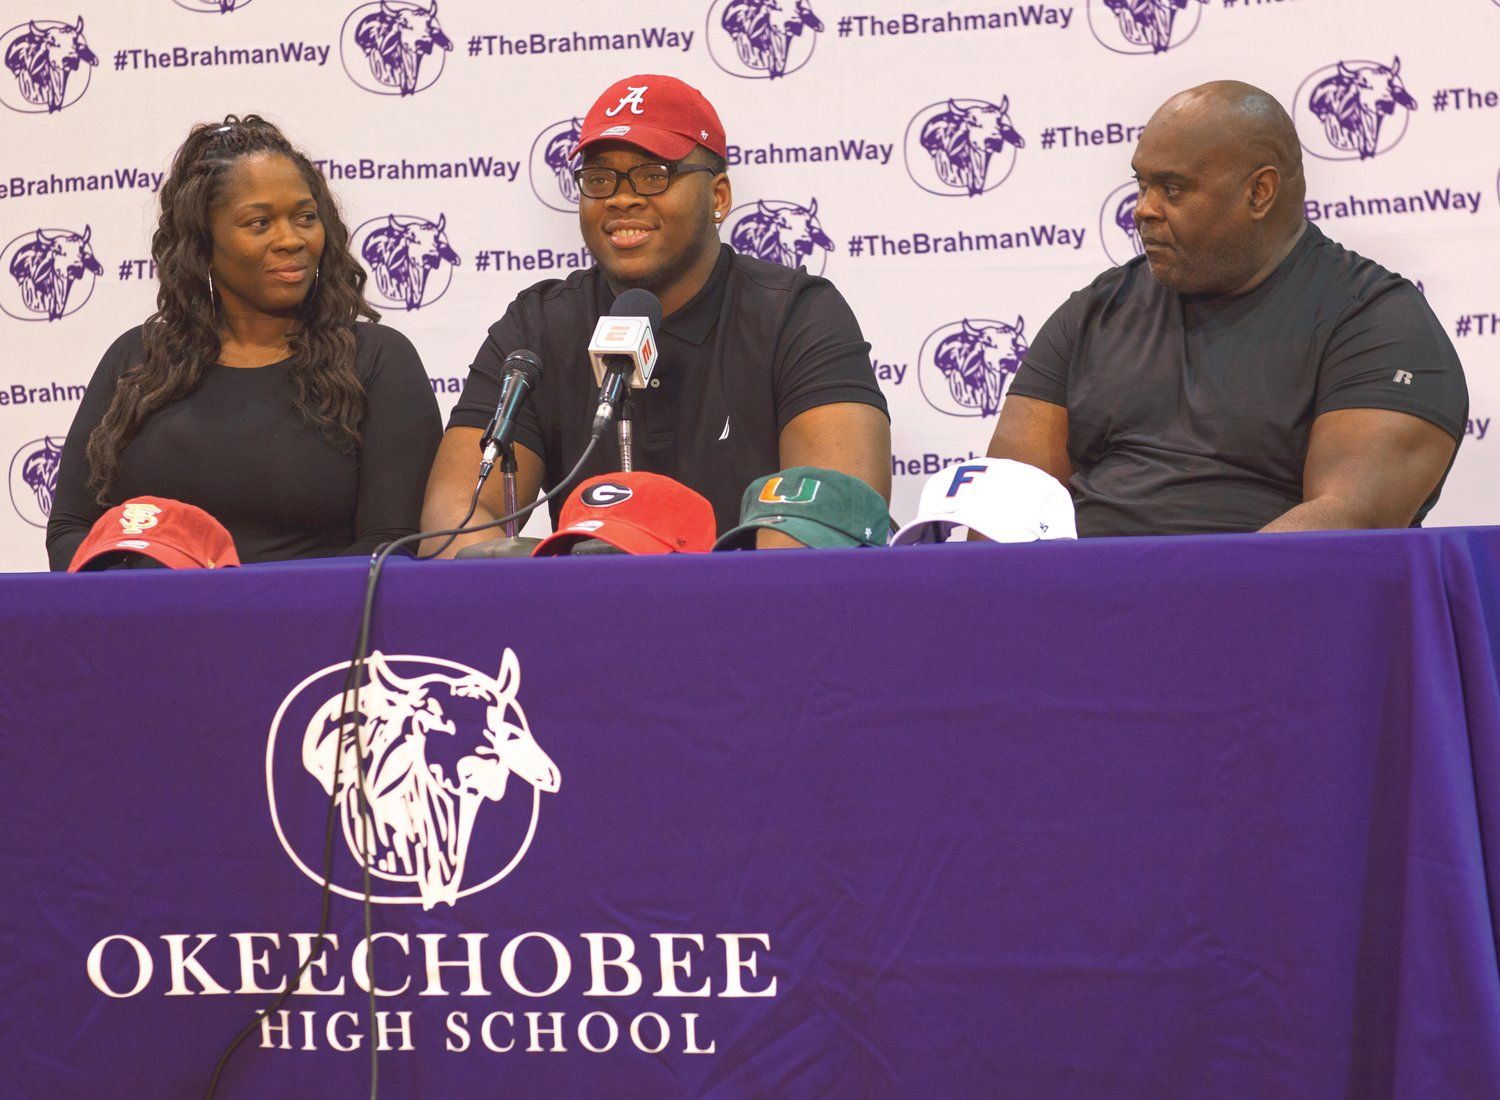 Evan Neal announced his decision in 2018 to attend the University of Alabama, as his mother and father sit by his side.